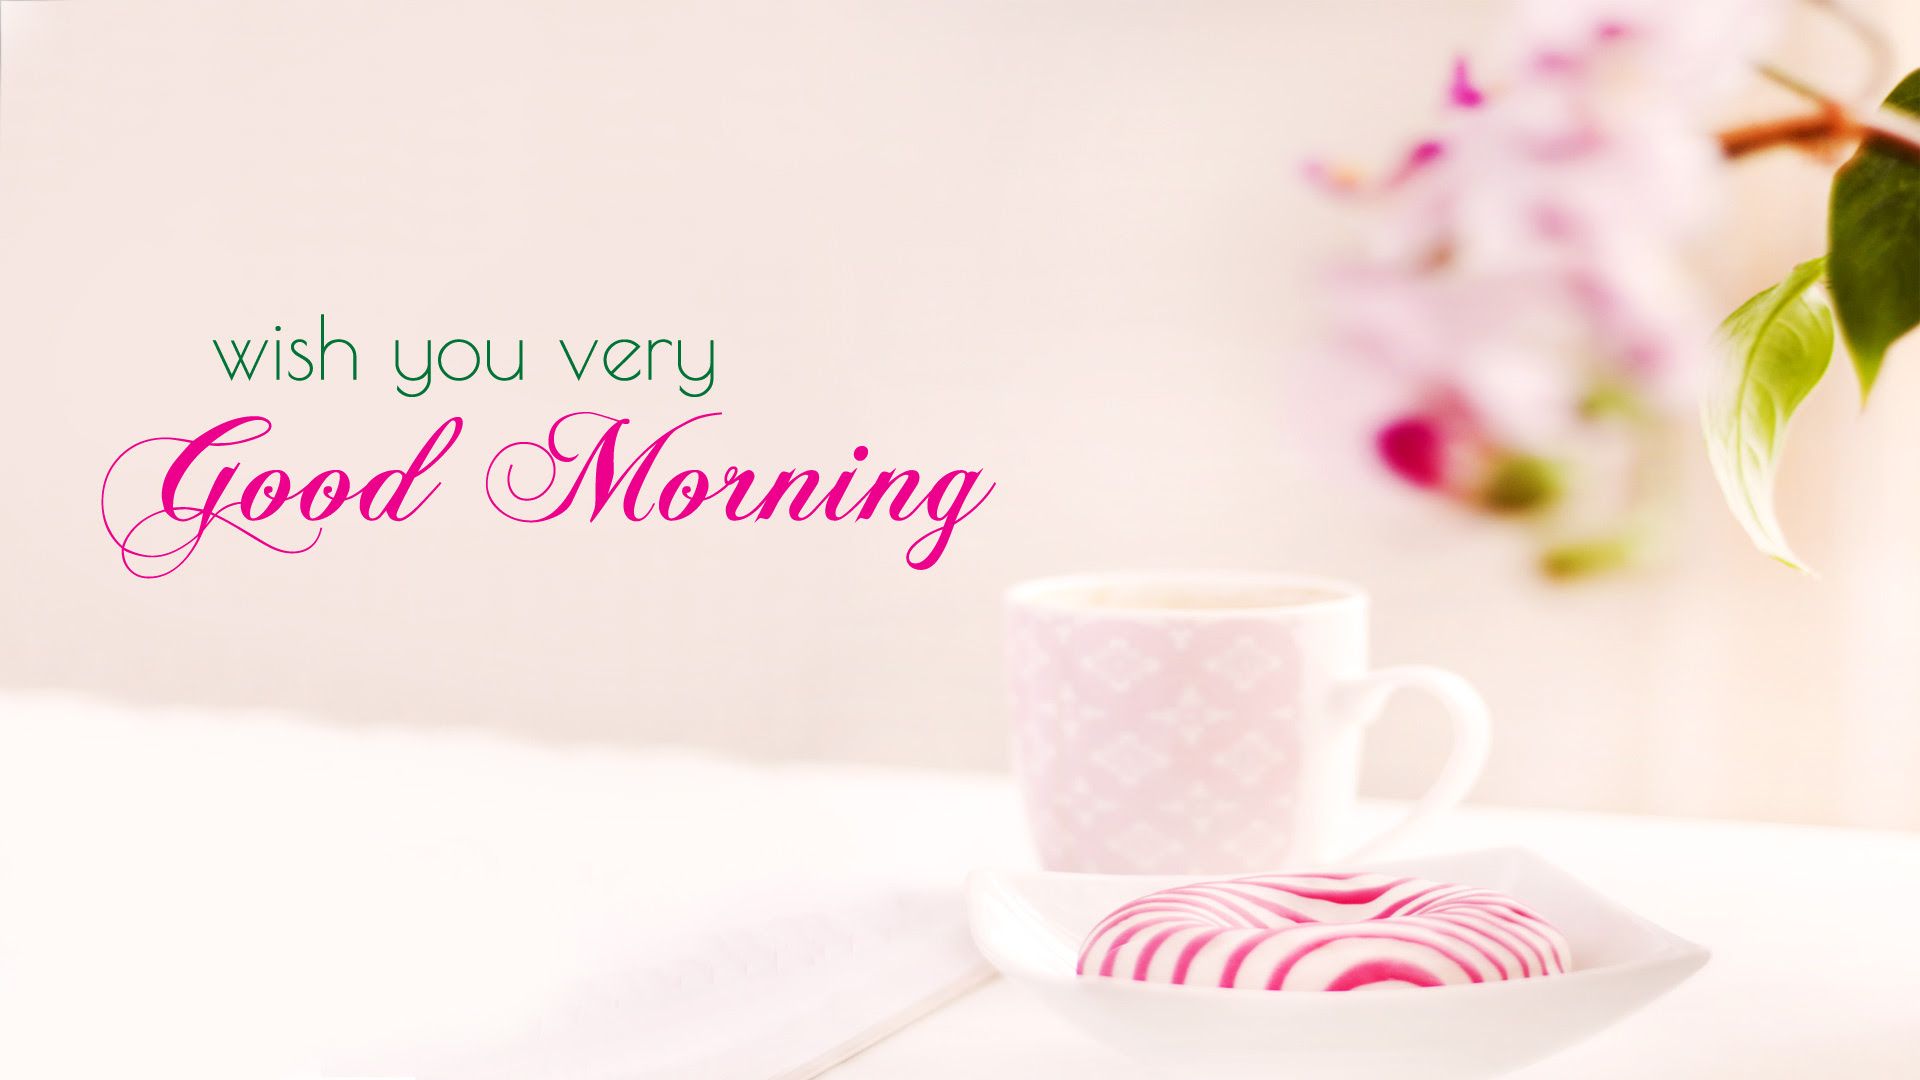 Good Morning Wallpaper With Flowers Full Hd 1920x1080 Gm Images